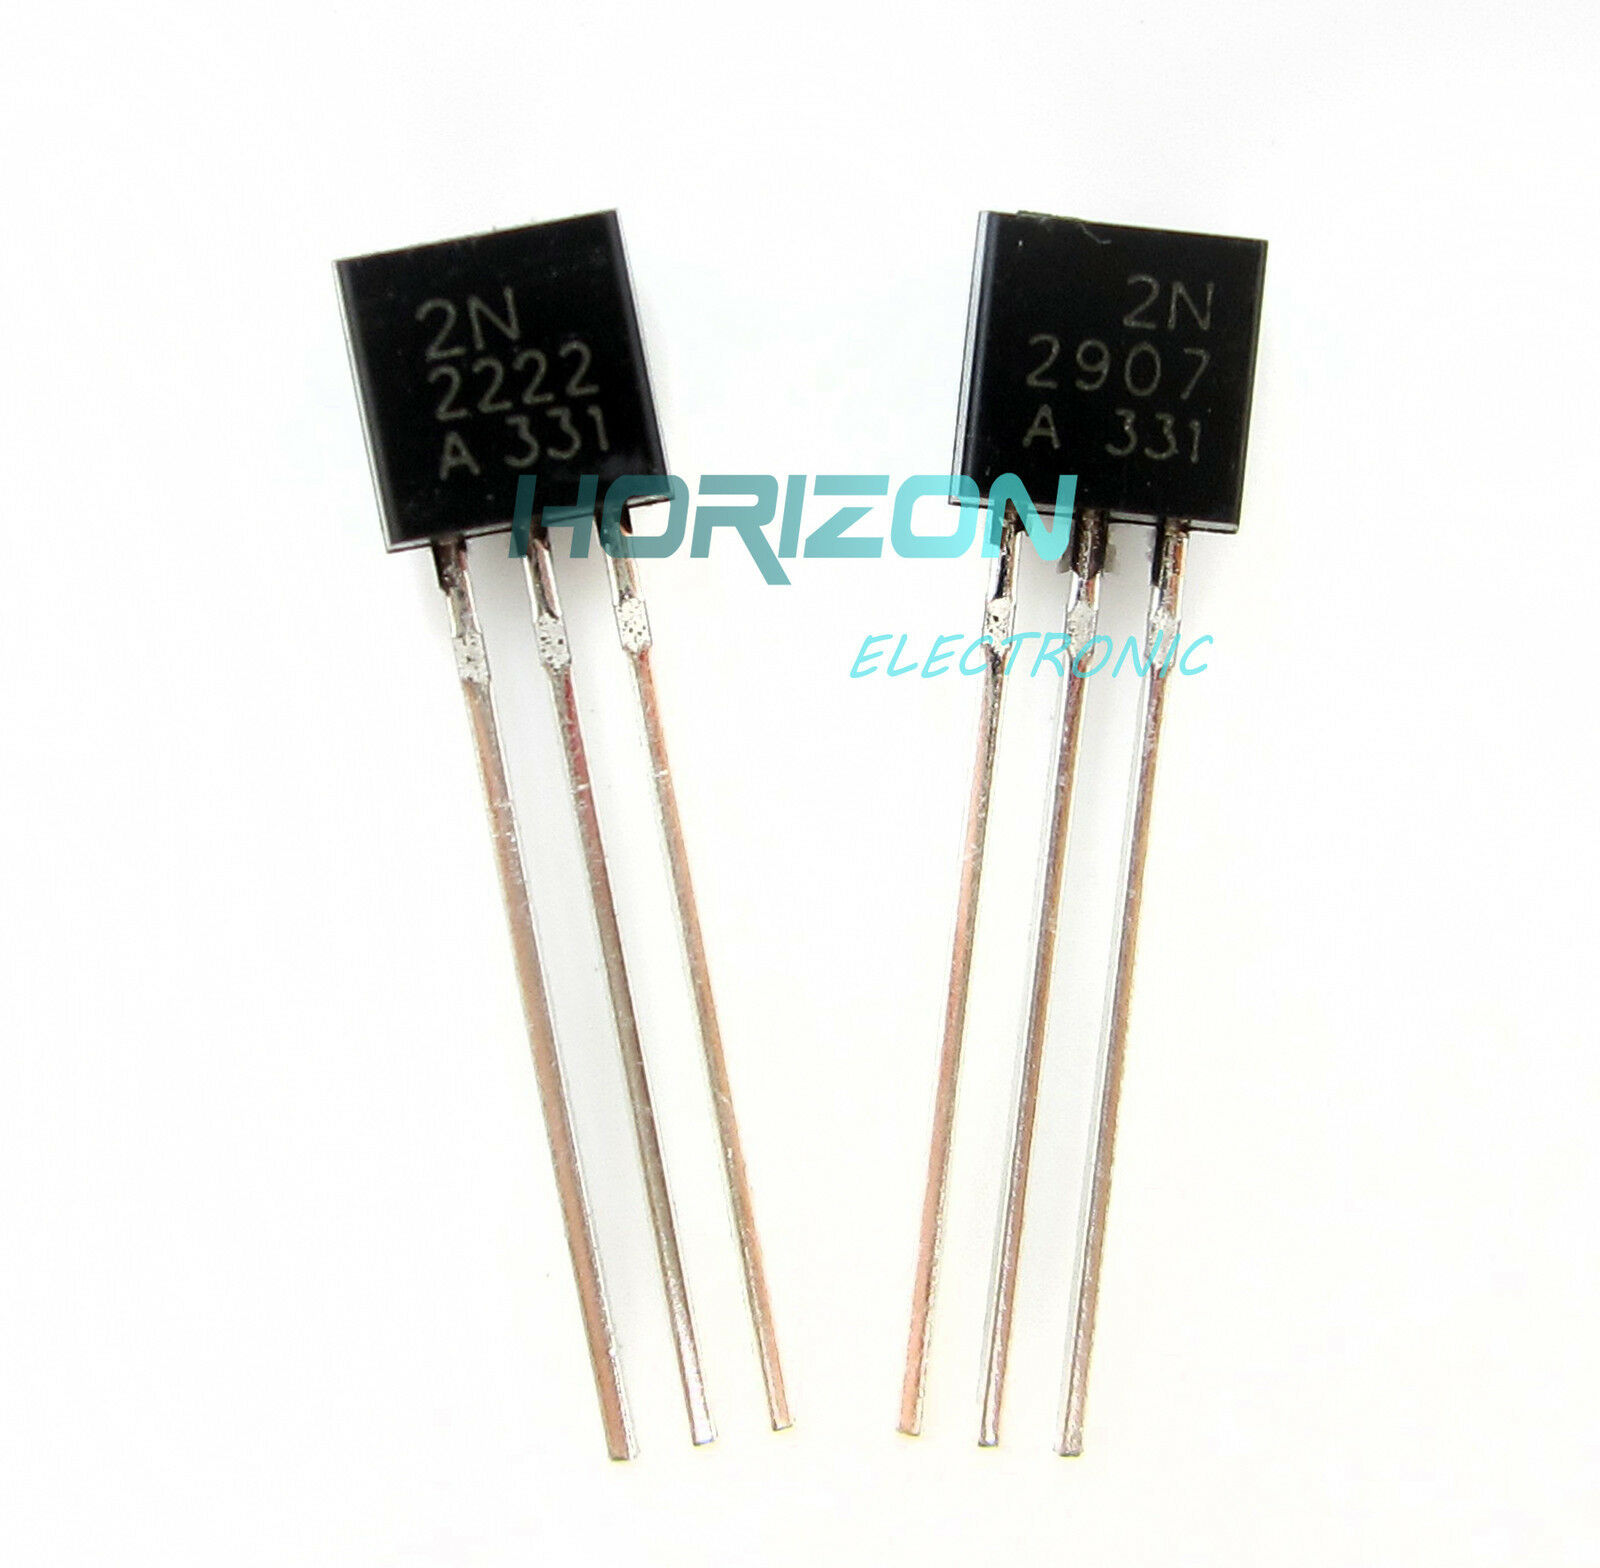 100pair Or 200pcs 2n2222 2n2907 2n2222a 2n2907a To 92 New Transistor 1000pcs Lm358 Sop8 Integrated Circuit Operational Amplifier Ic 1 Of 1only 5 Available